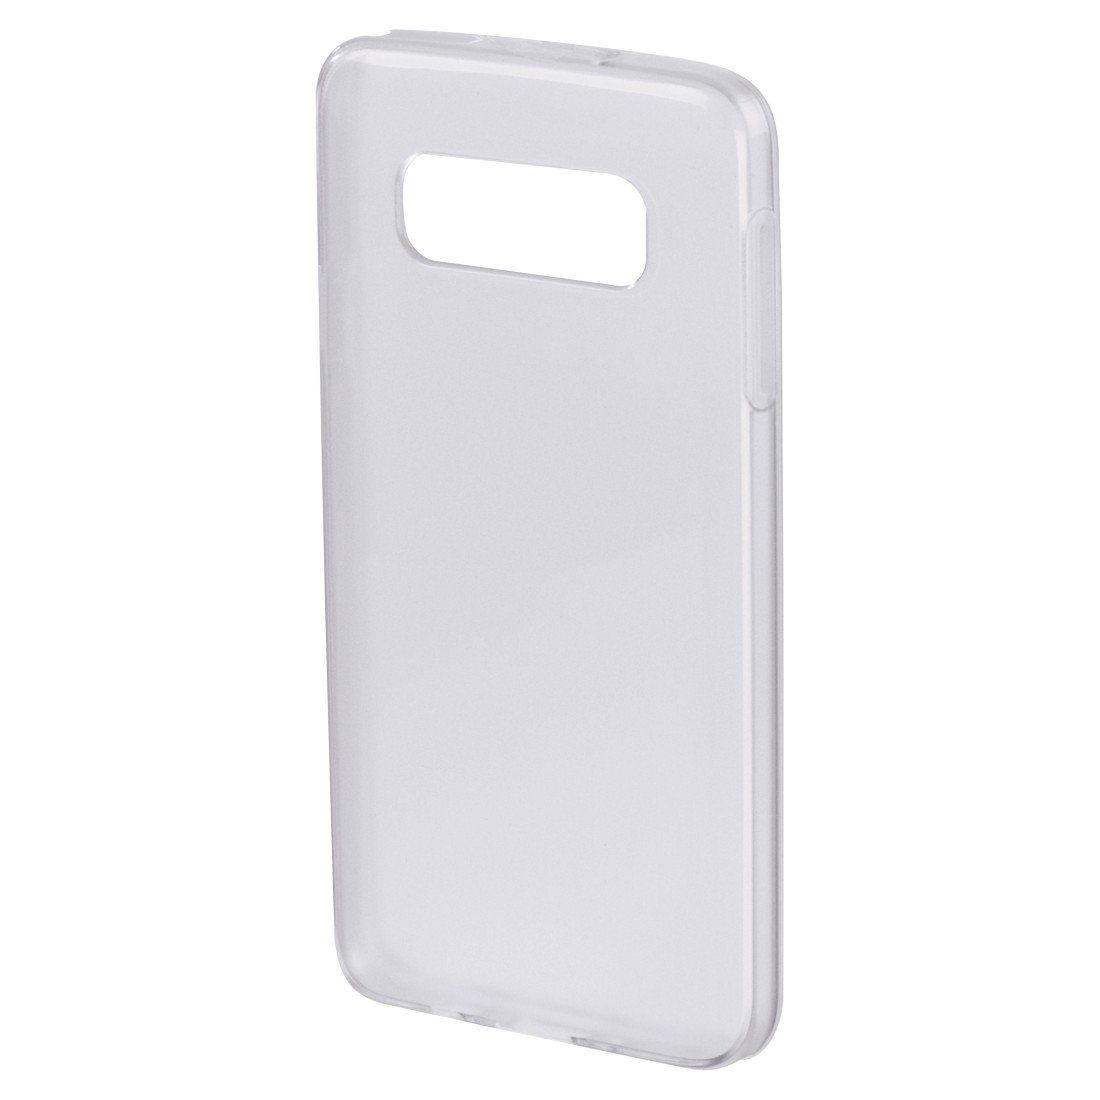 Hama Cover Crystal für Samsung Galaxy A5, Transparent